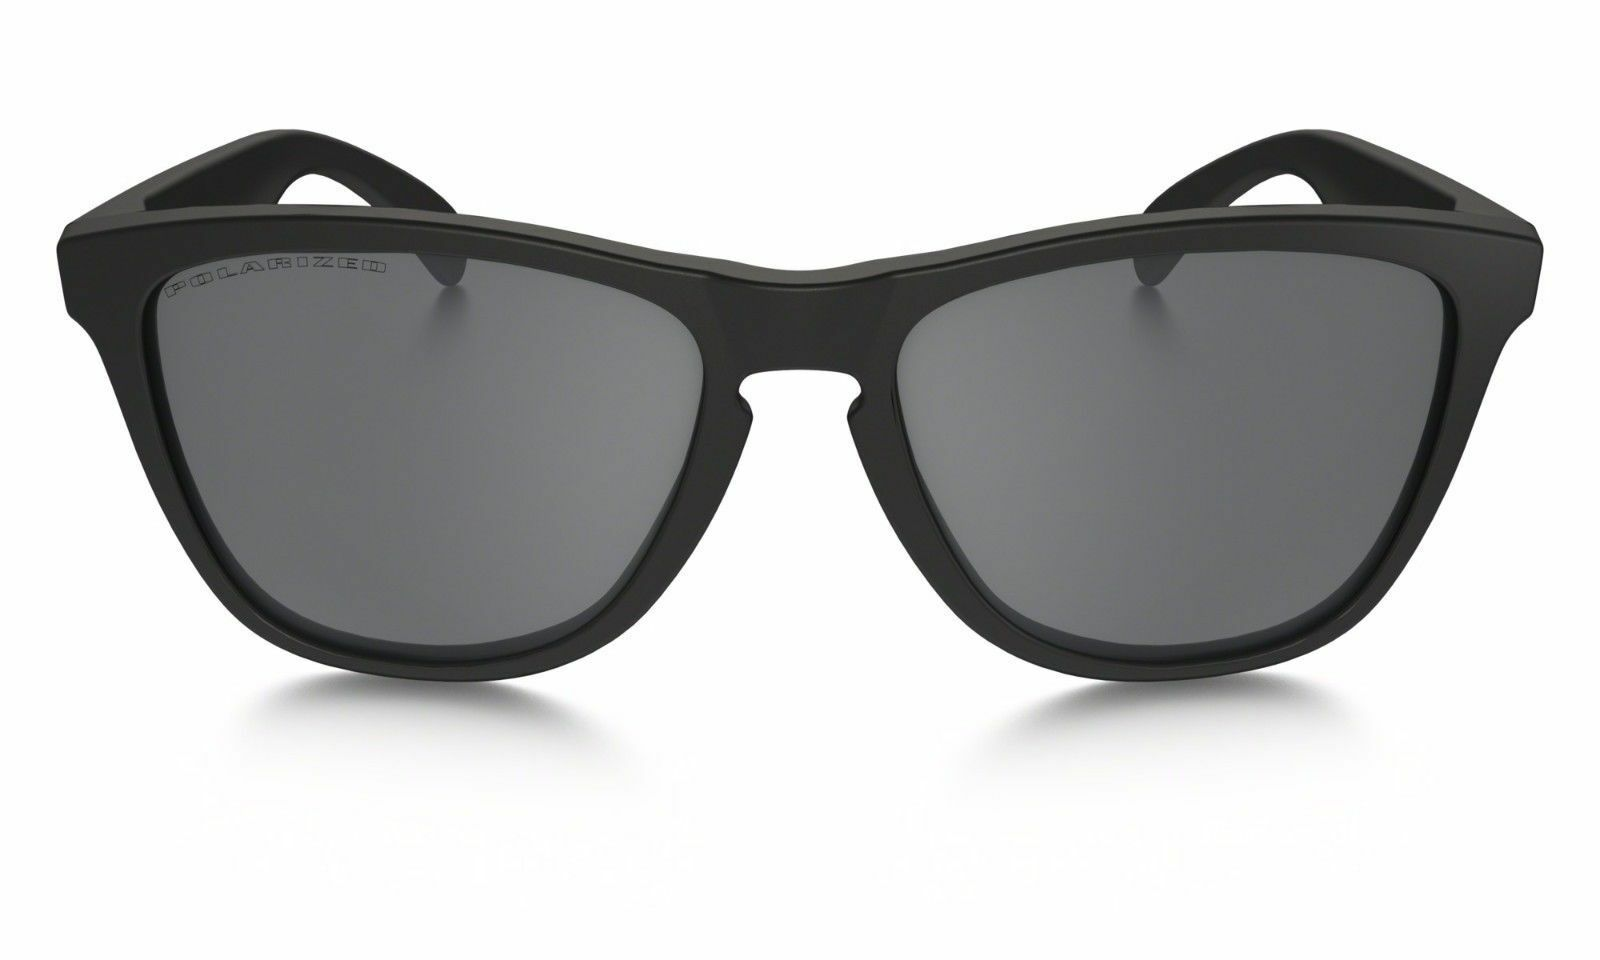 d33f45250b9 Details about Authentic New Oakley Sunglasses OO 9013 24-297 Matte Black  Iridium Polarized